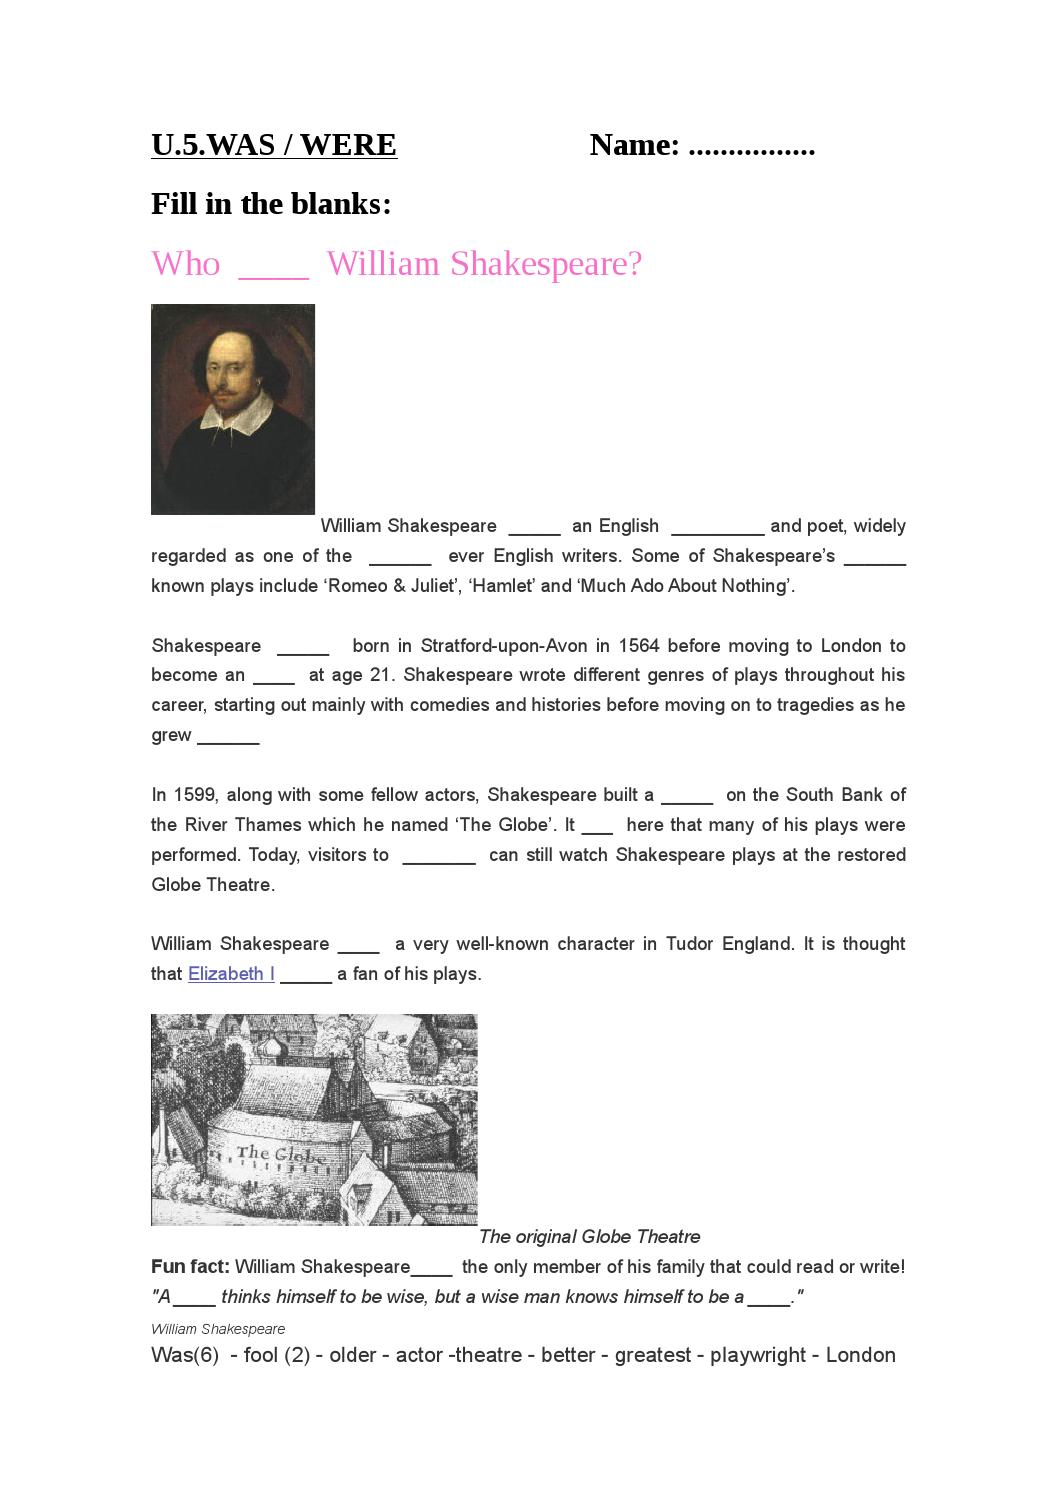 shakespeare play genres